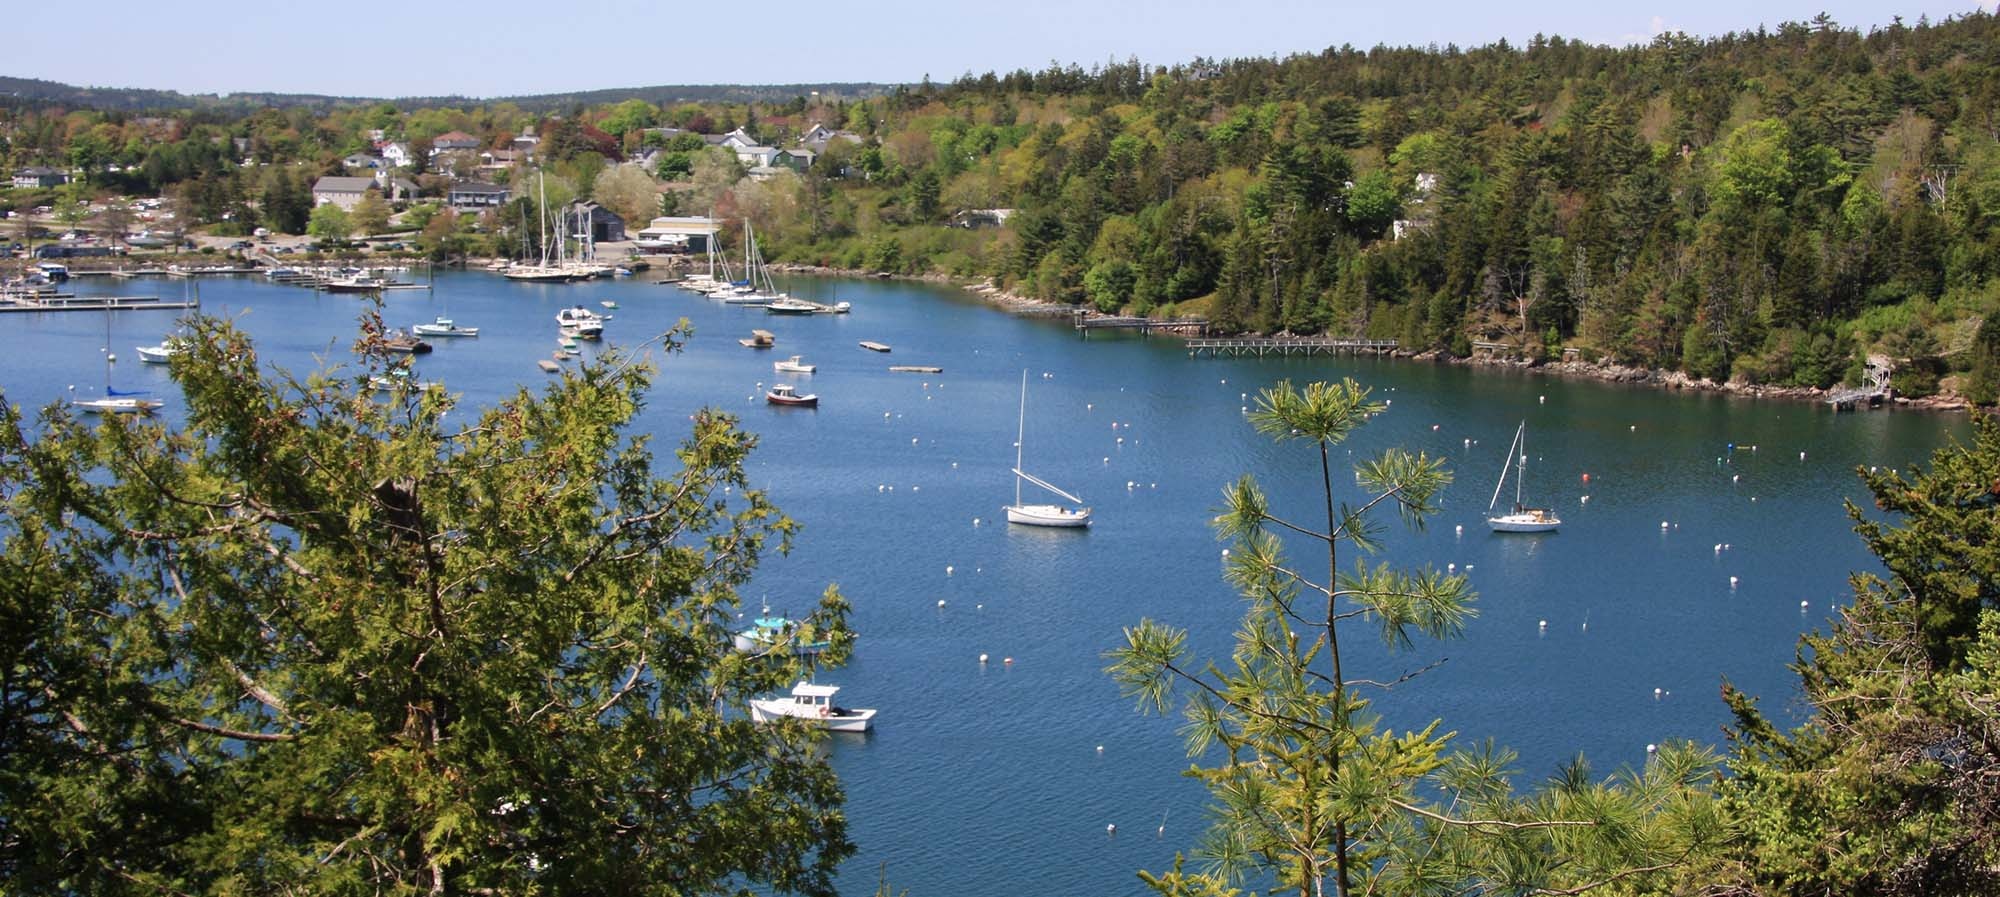 Northeast Harbor on Mount Desert Island